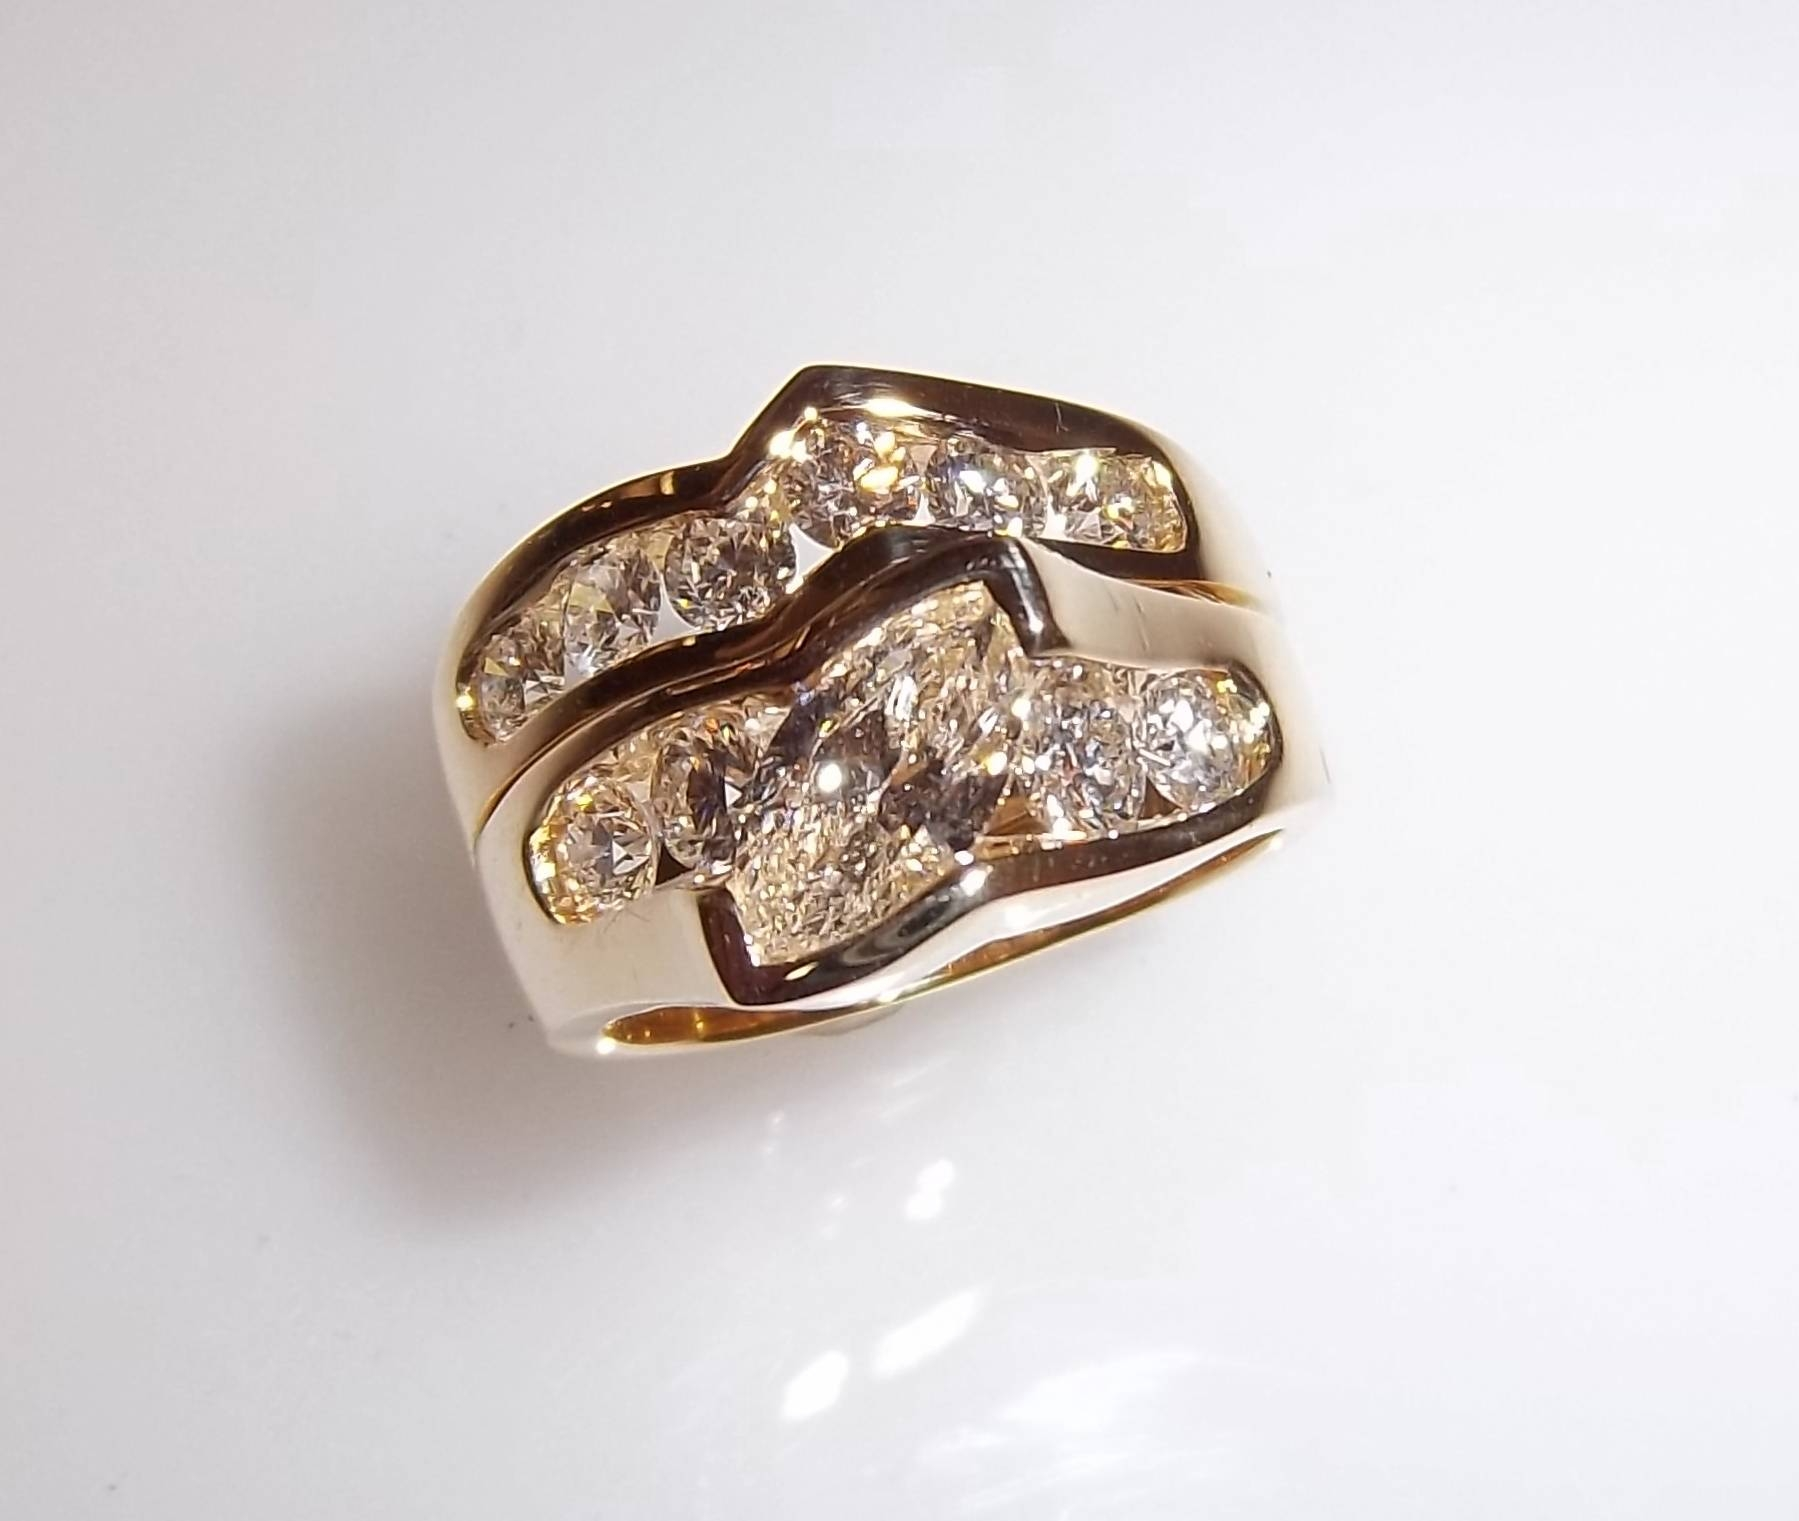 Wedding Anniversary Rings For Her | Wedding Ideas Throughout Recent 25th Wedding Anniversary Rings (View 17 of 25)